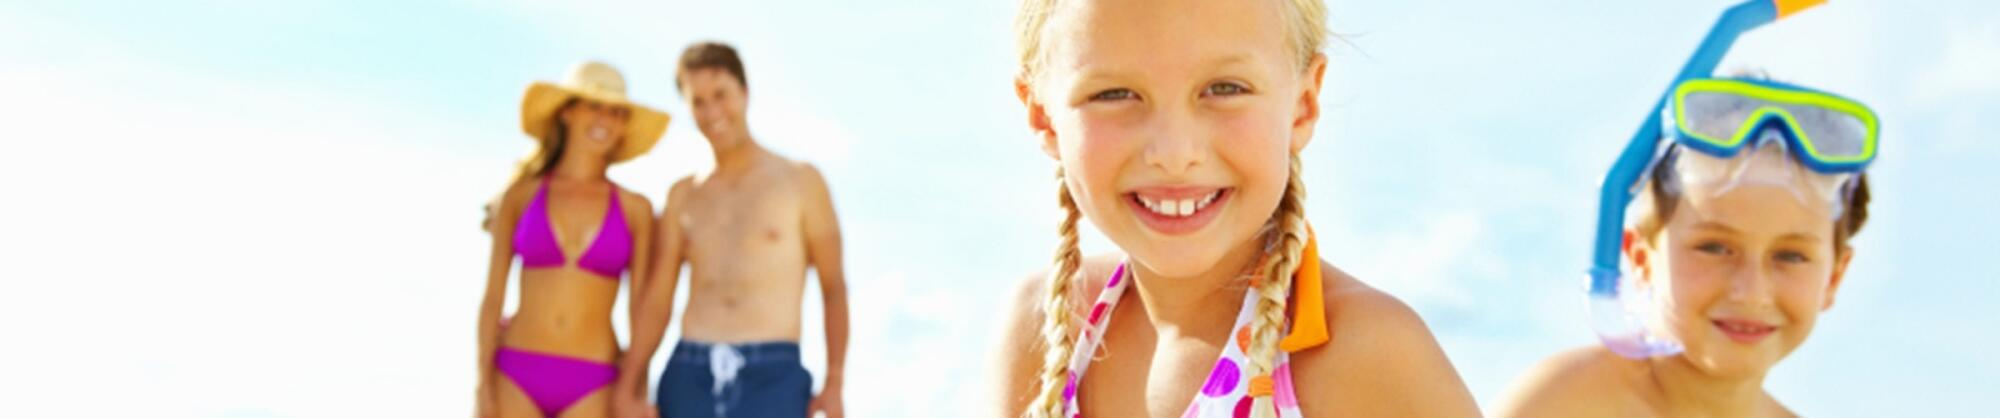 Offer 2nd week of July: all-inclusive holiday with discounts for children